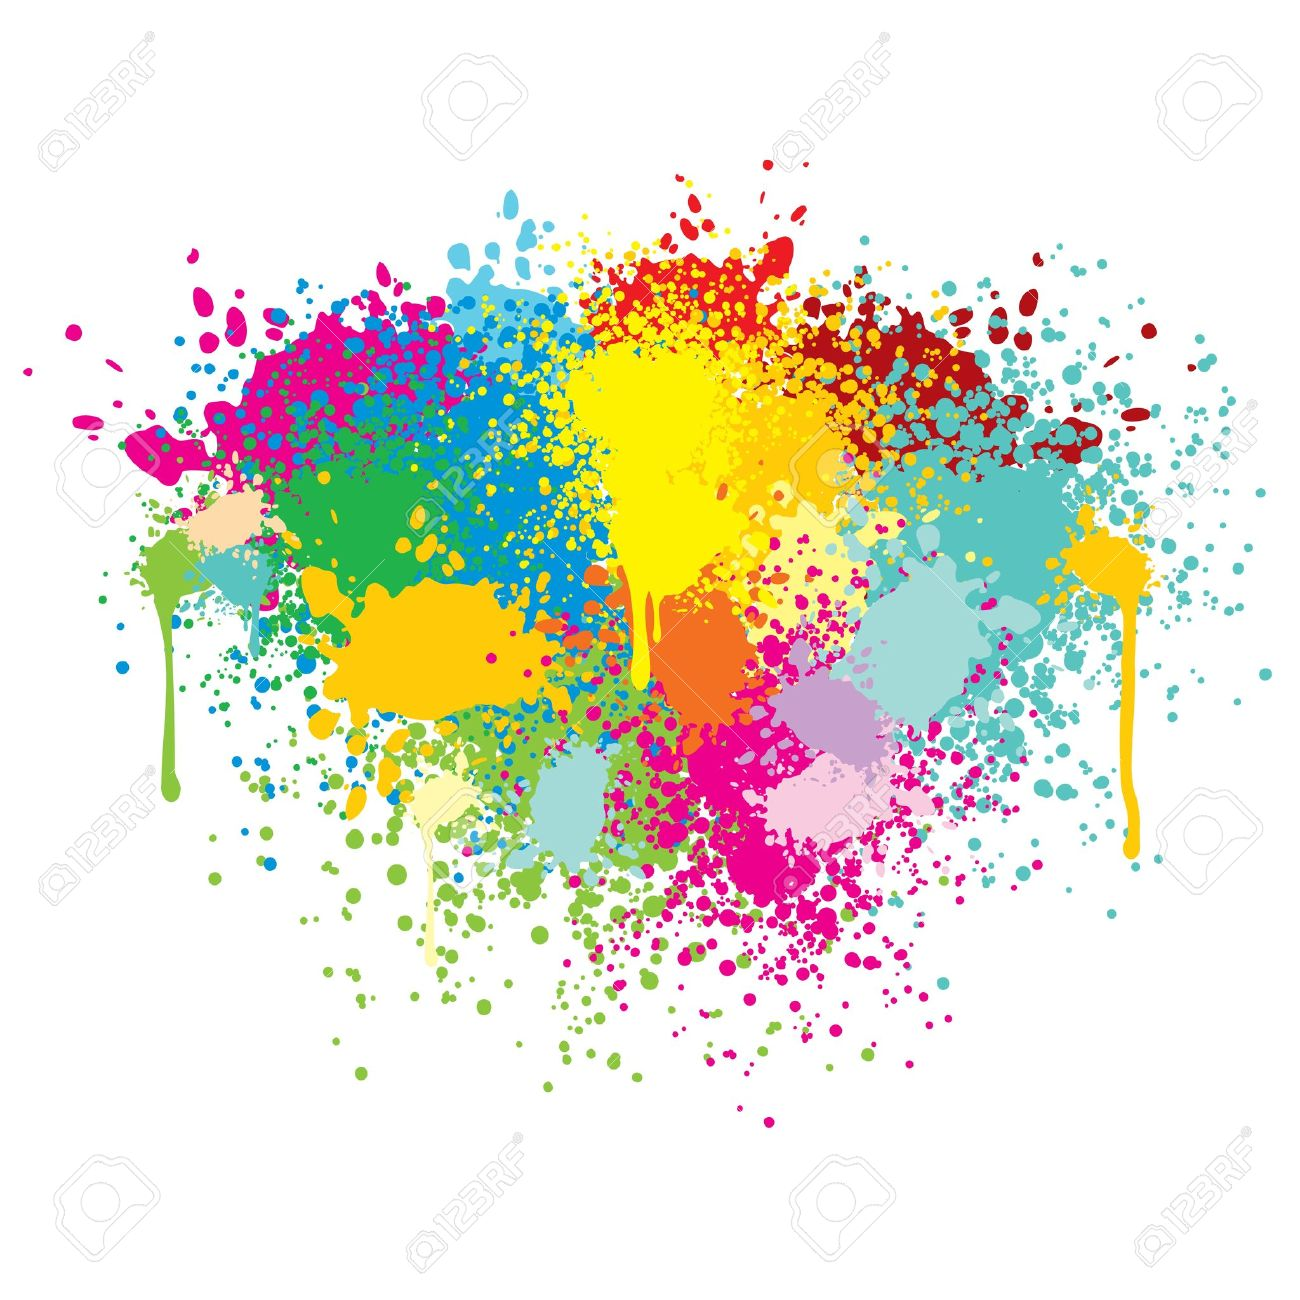 abstract colorful splashes vector background royalty free cliparts rh 123rf com paint splash vector png paint splash vector brush photoshop